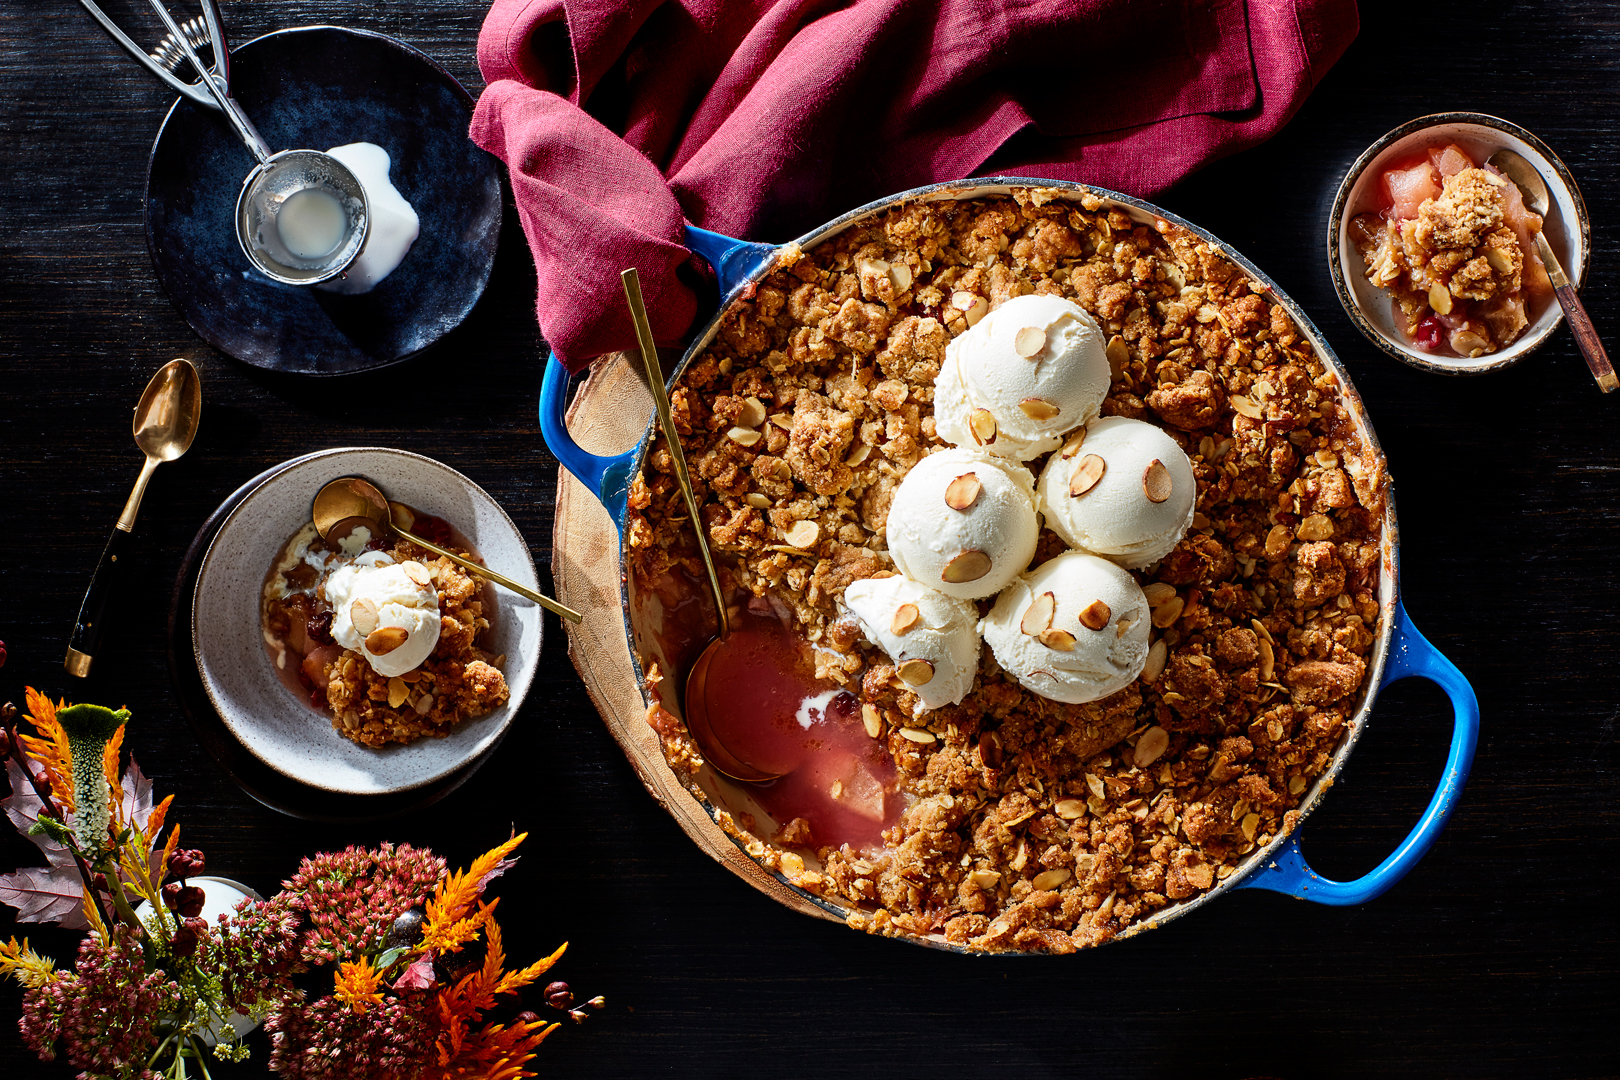 Apple-Cranberry-Crisp-with-Oatmeal-Cookie-Crumble-29092016-copy-1080.jpg